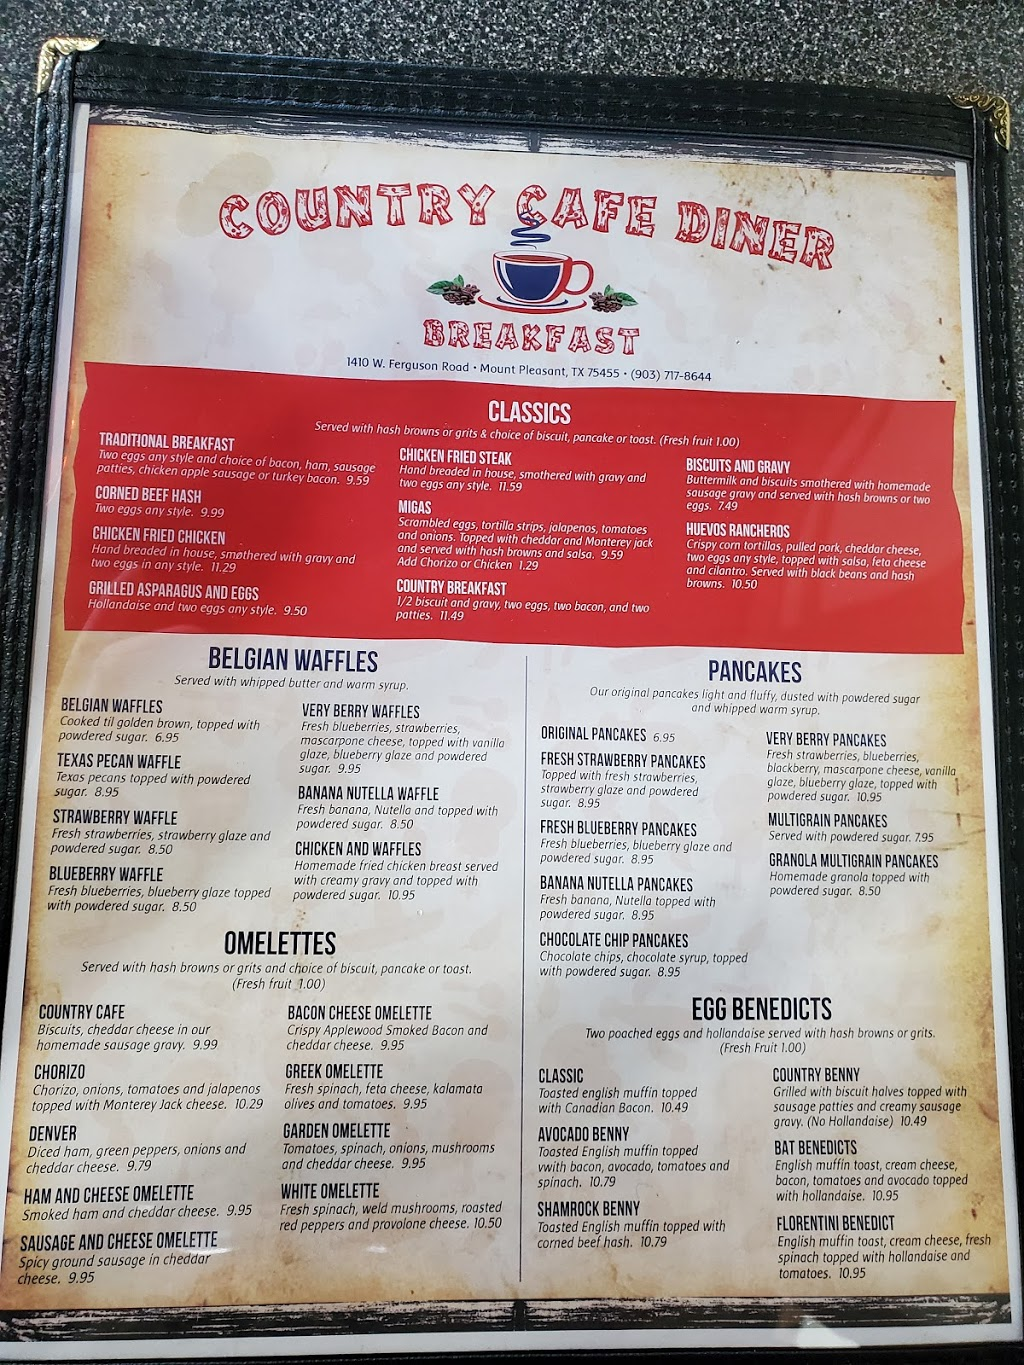 Country Cafe Diner   restaurant   1410 W Ferguson Rd, Mt Pleasant, TX 75455, USA   9037178644 OR +1 903-717-8644